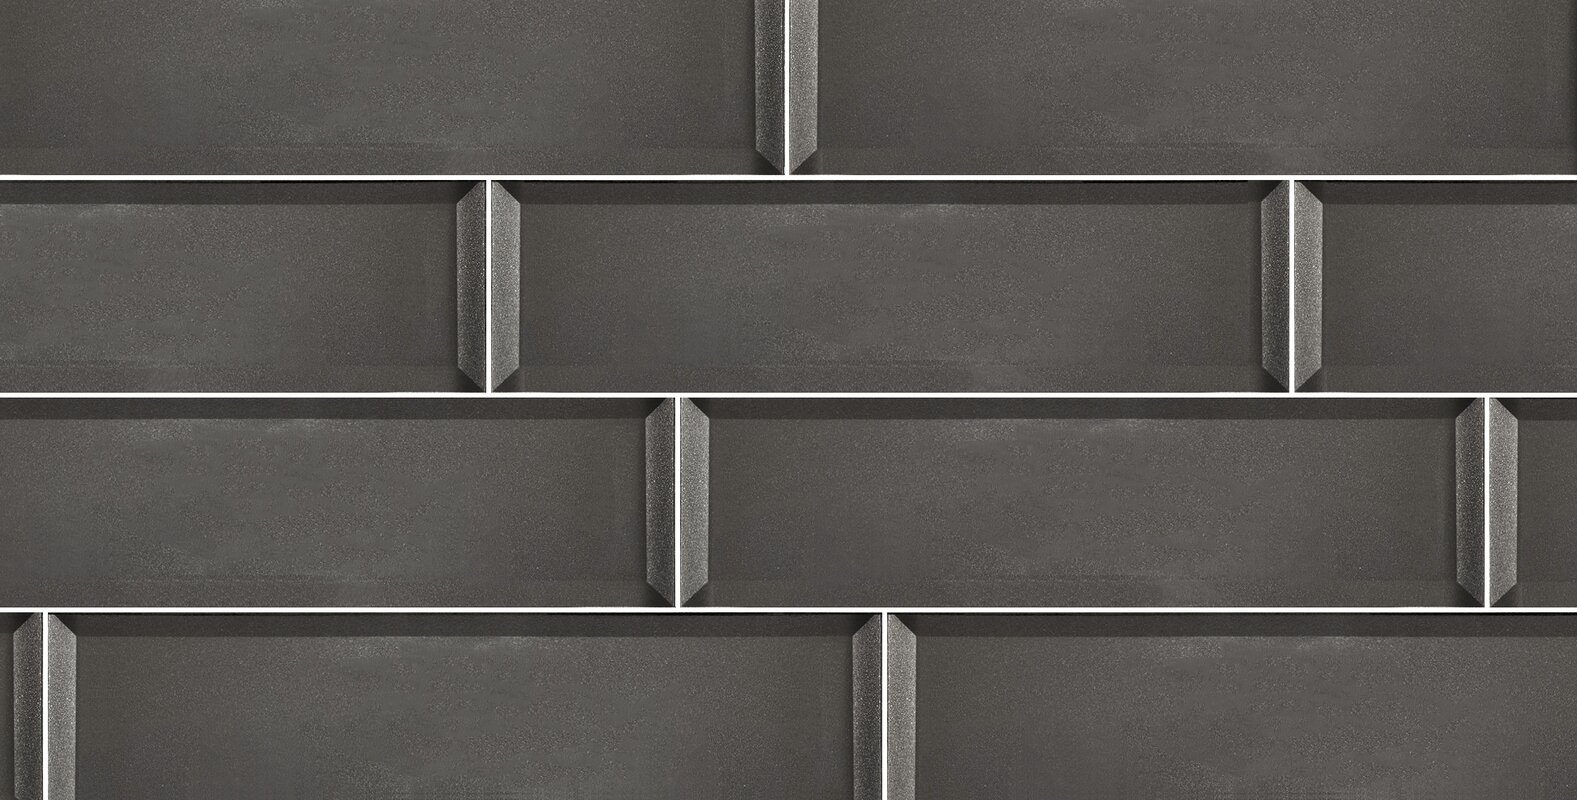 Dimensions of subway tile tile design ideas abolos secret dimensions 3 x 12 gl subway tile in glossy gray dailygadgetfo Gallery